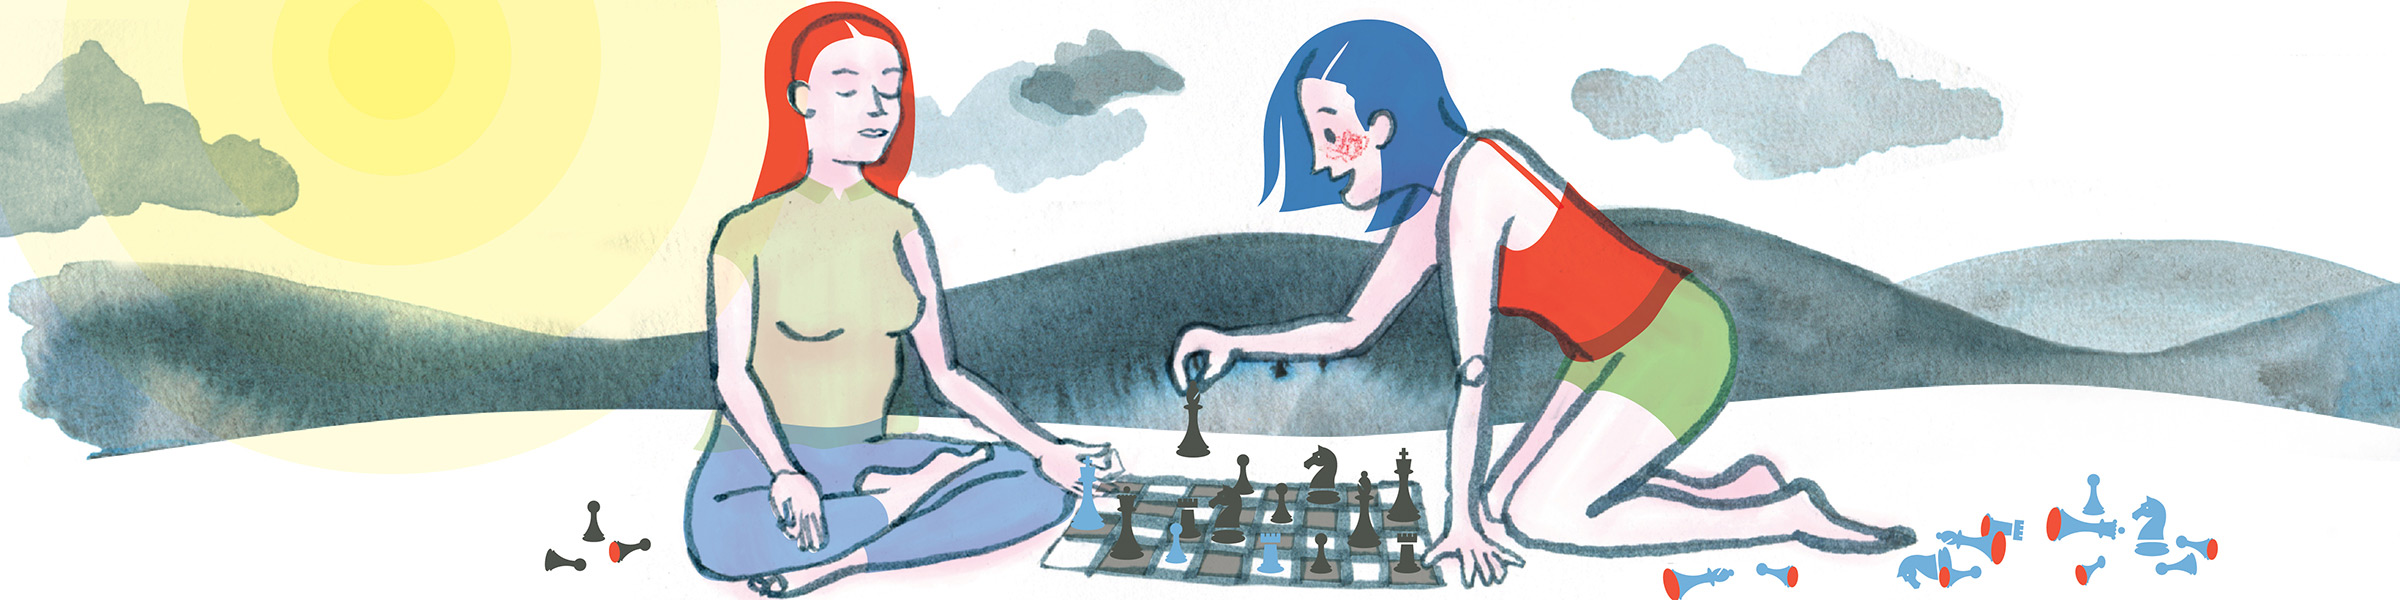 Header image featuring two women playing chess while one meditates